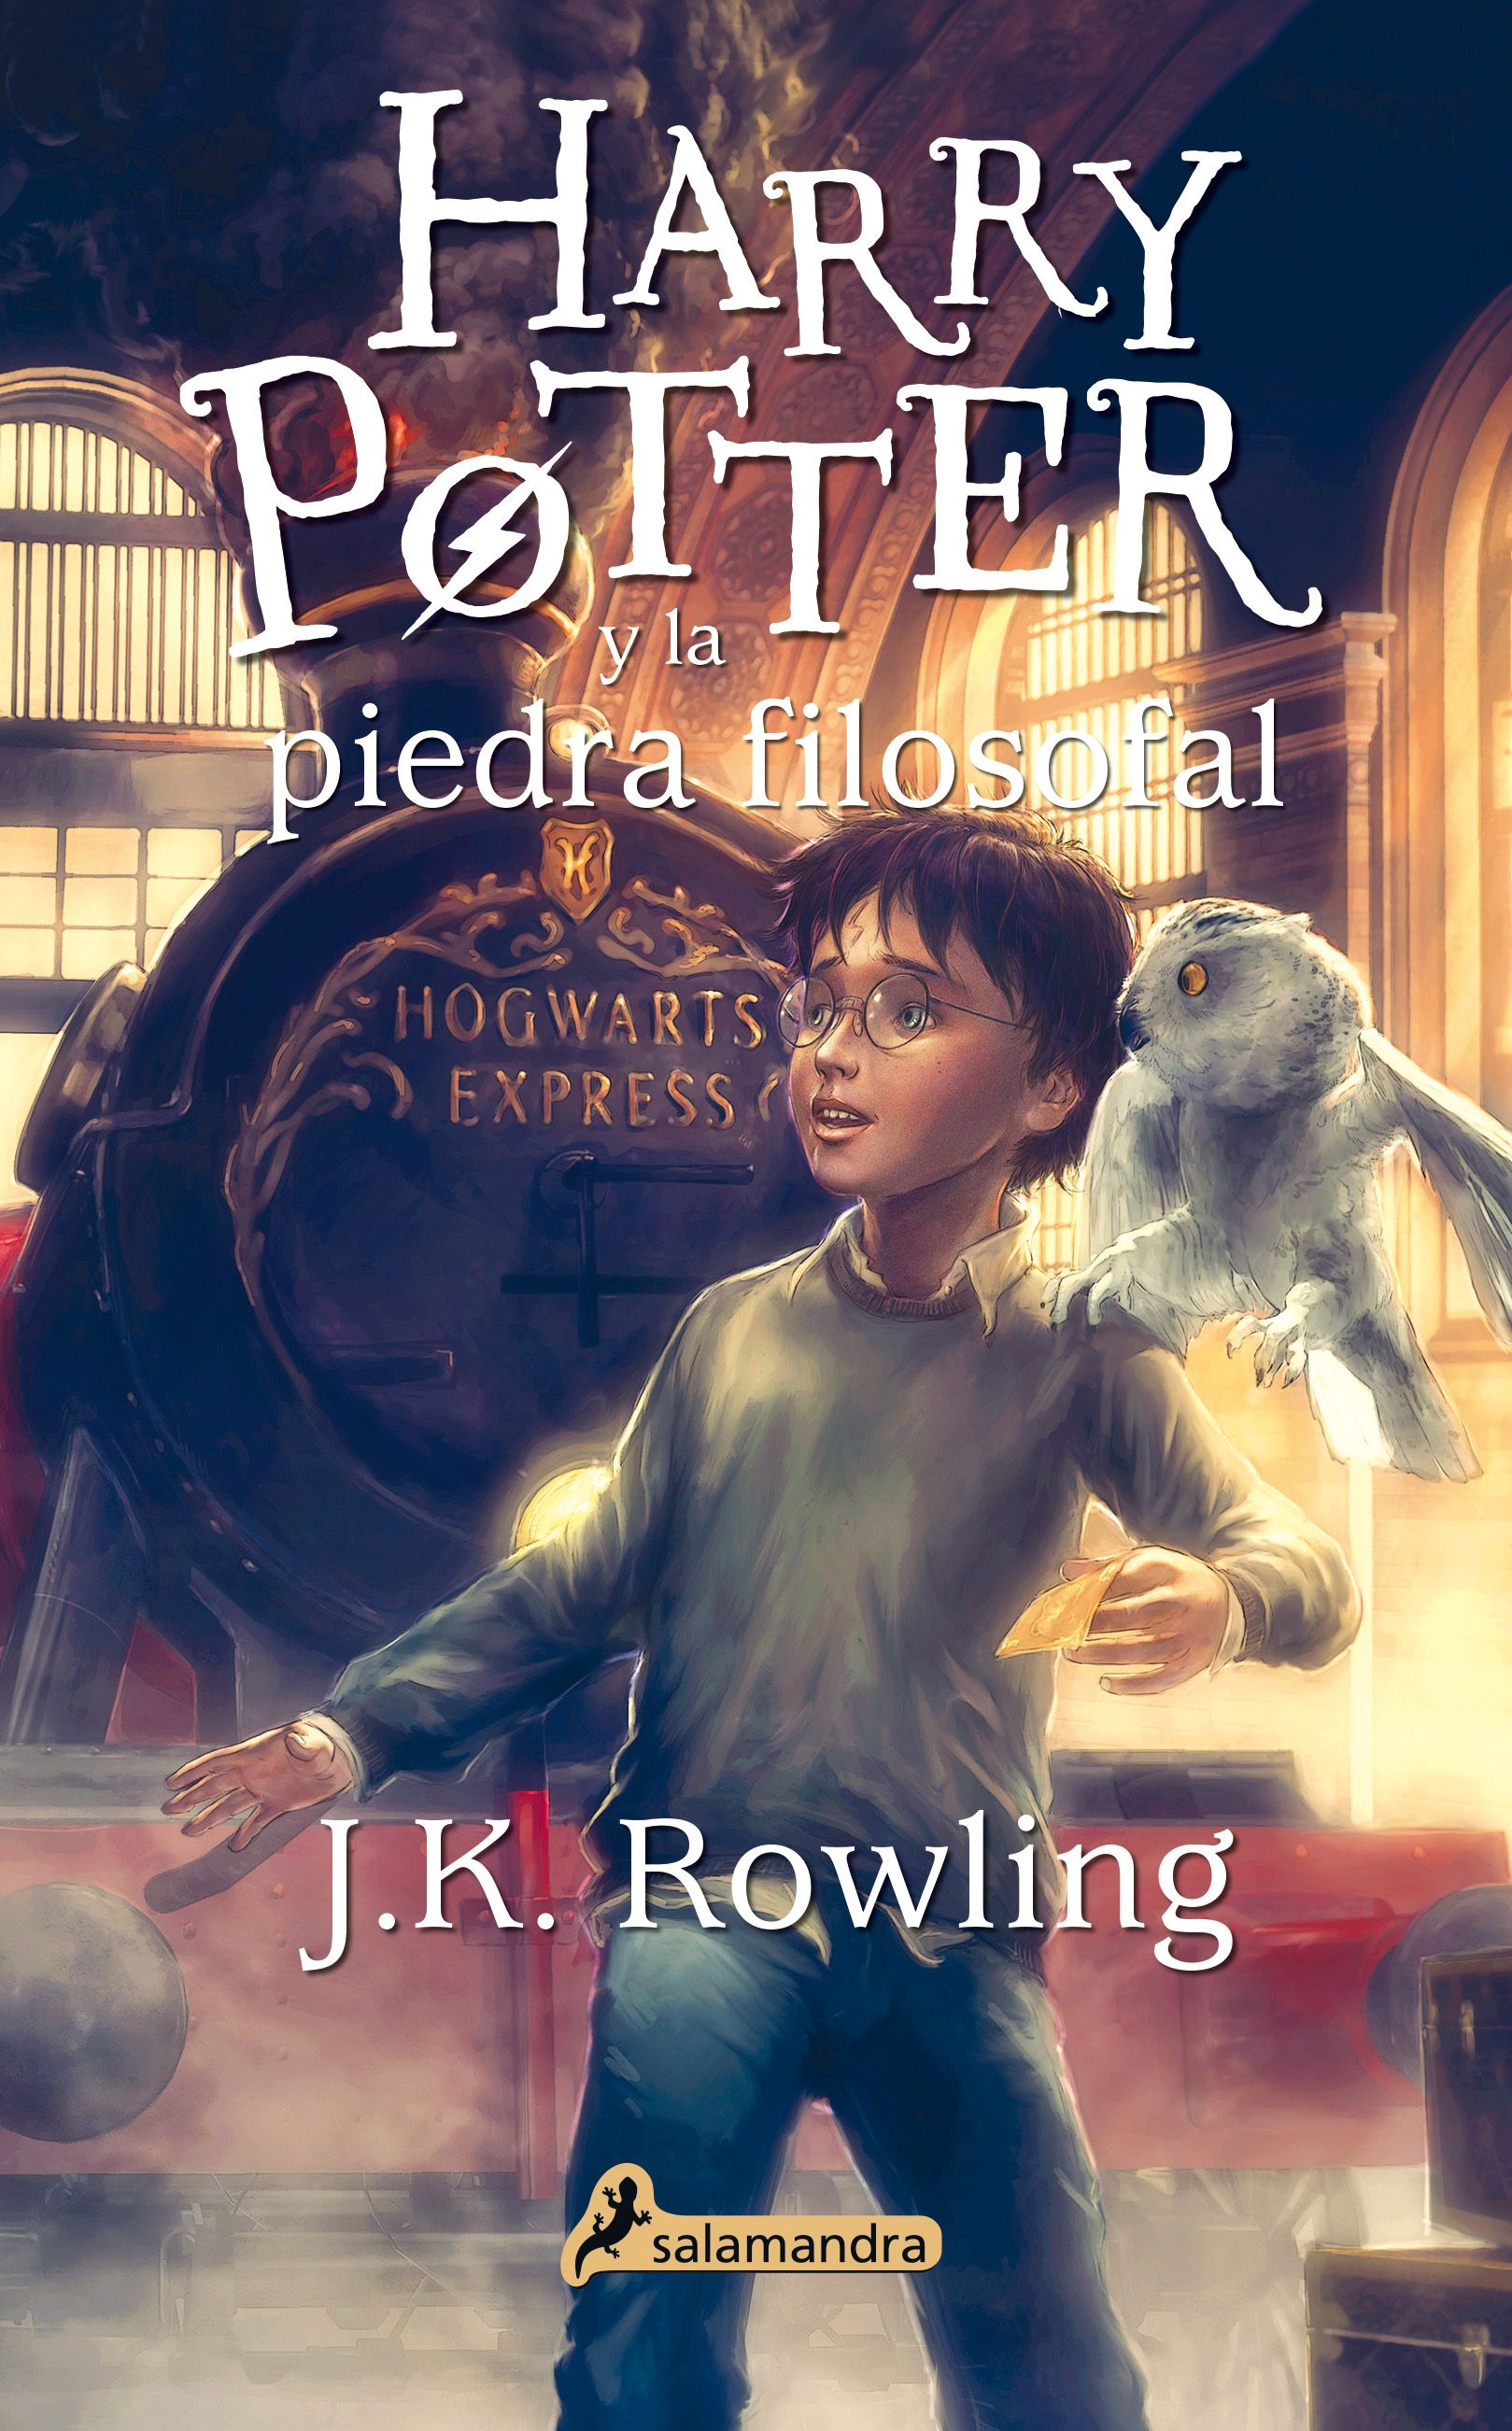 Descargar Libros De Harry Potter Harry Potter Y La Piedra Filosofal - J.k Rowling